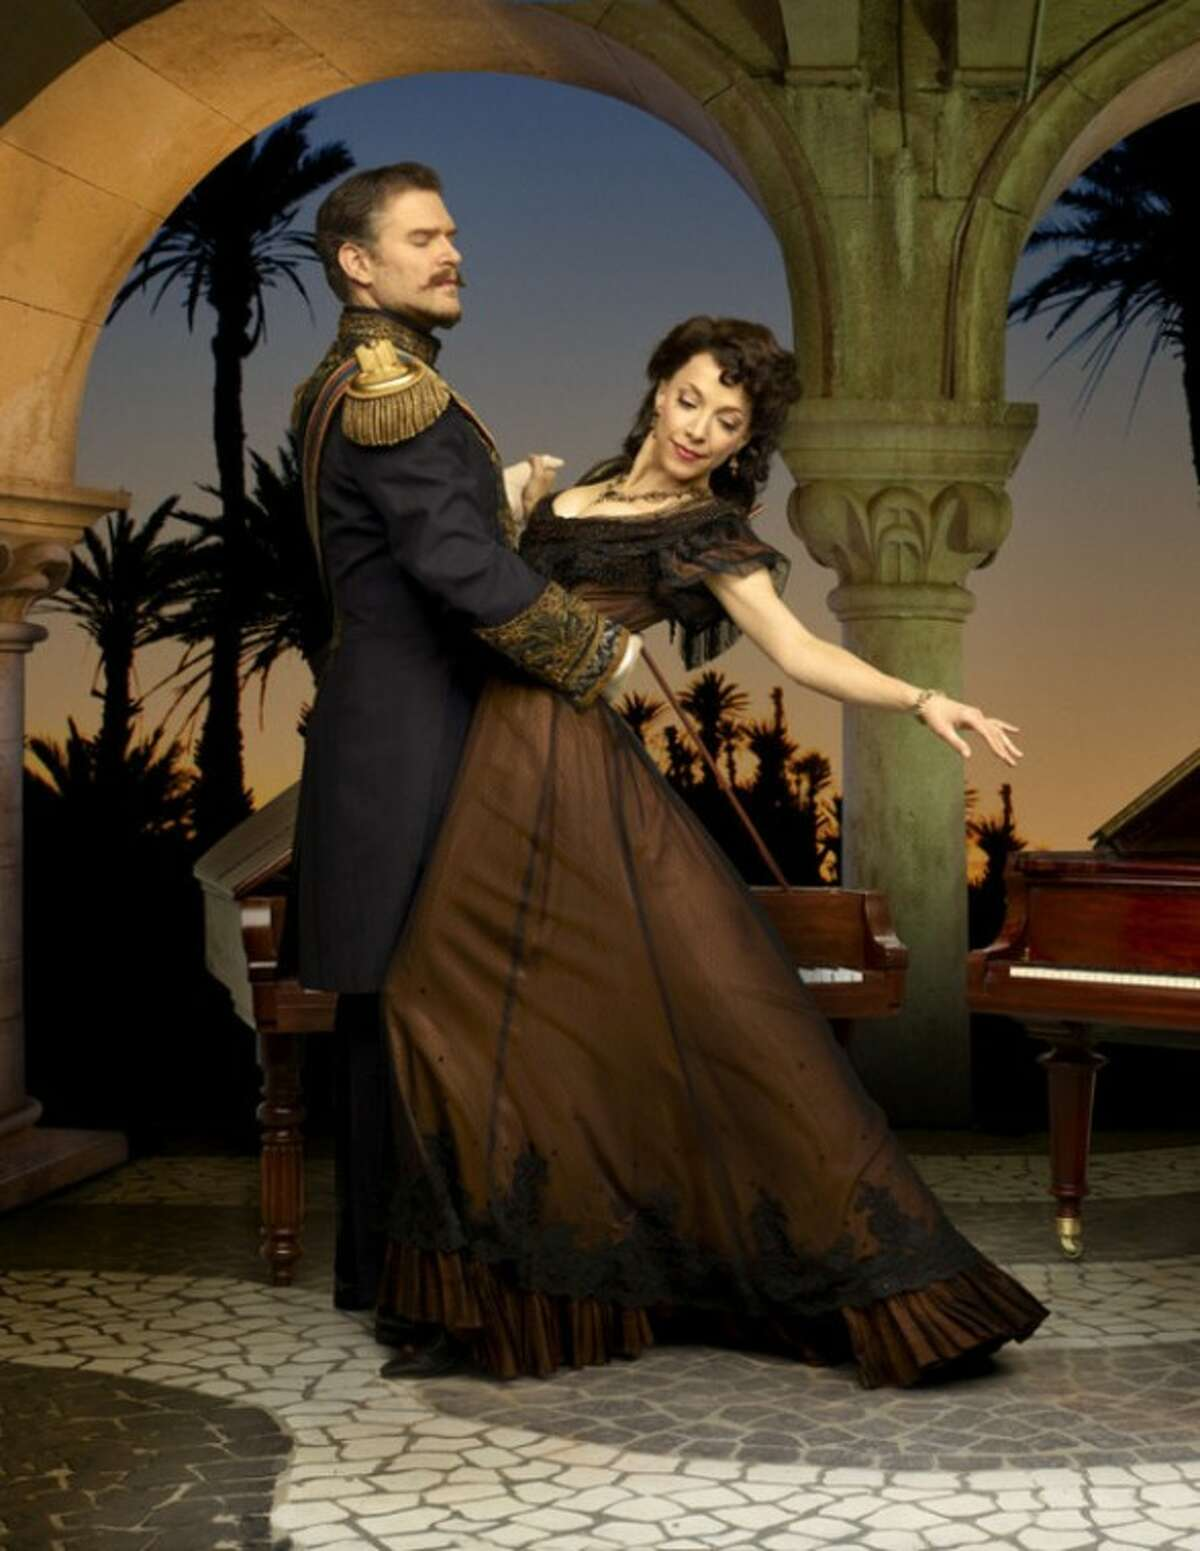 Contributed photo Ben Carlson, Deborah Hay star in Much Ado About Nothing at Stratford Shakespeare Festival in Canada.